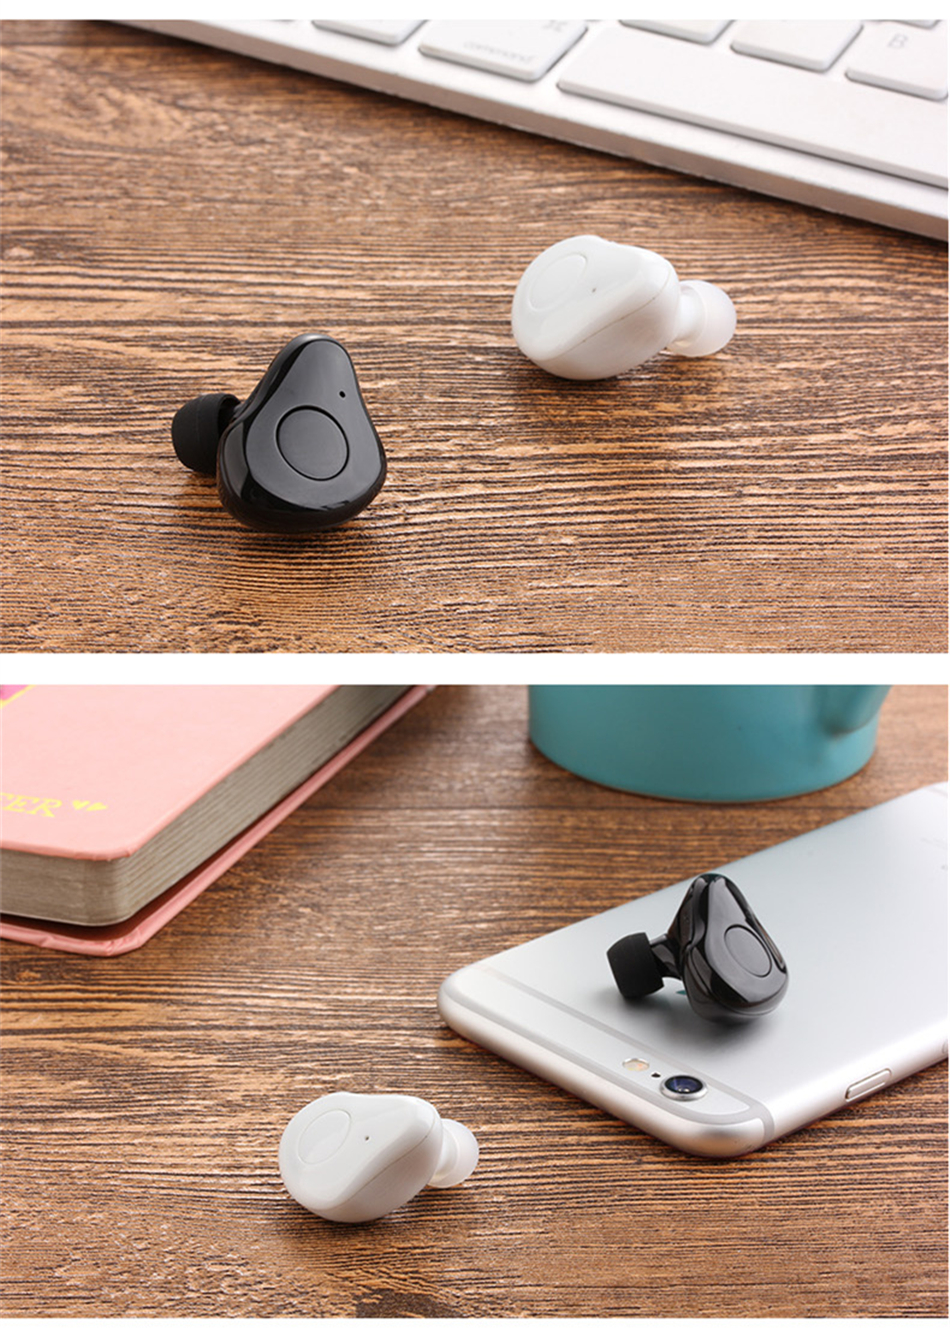 Super Mini Bluetooth Earphone with MIC 3D Stereo Sound In-ear Earbuds Wireless Earphone Car Earpiece Free Answer Control